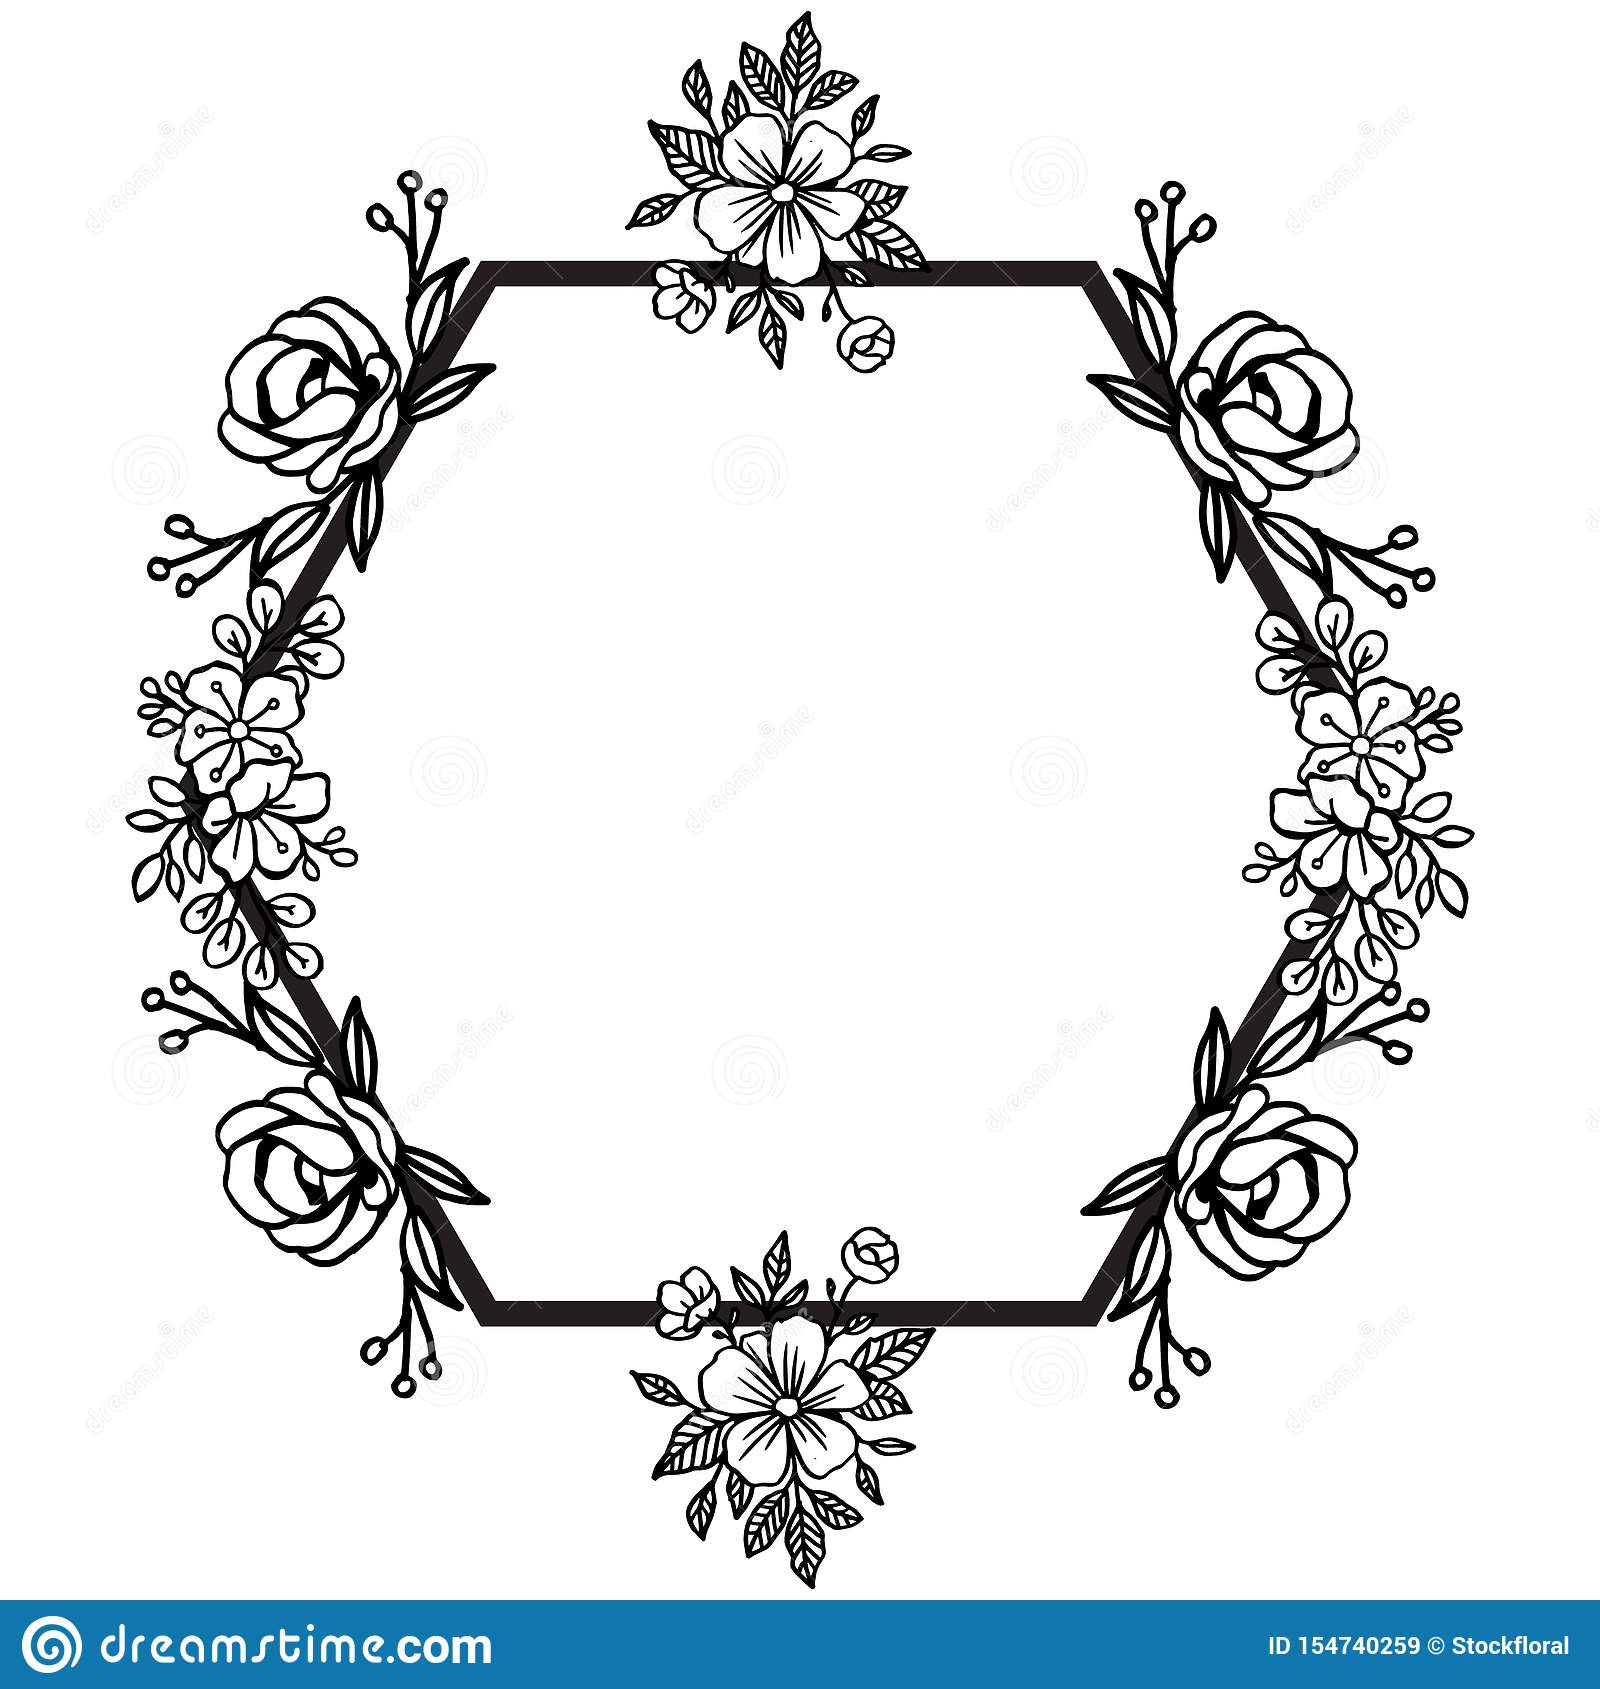 Art unique with border design frame beautiful drawing of